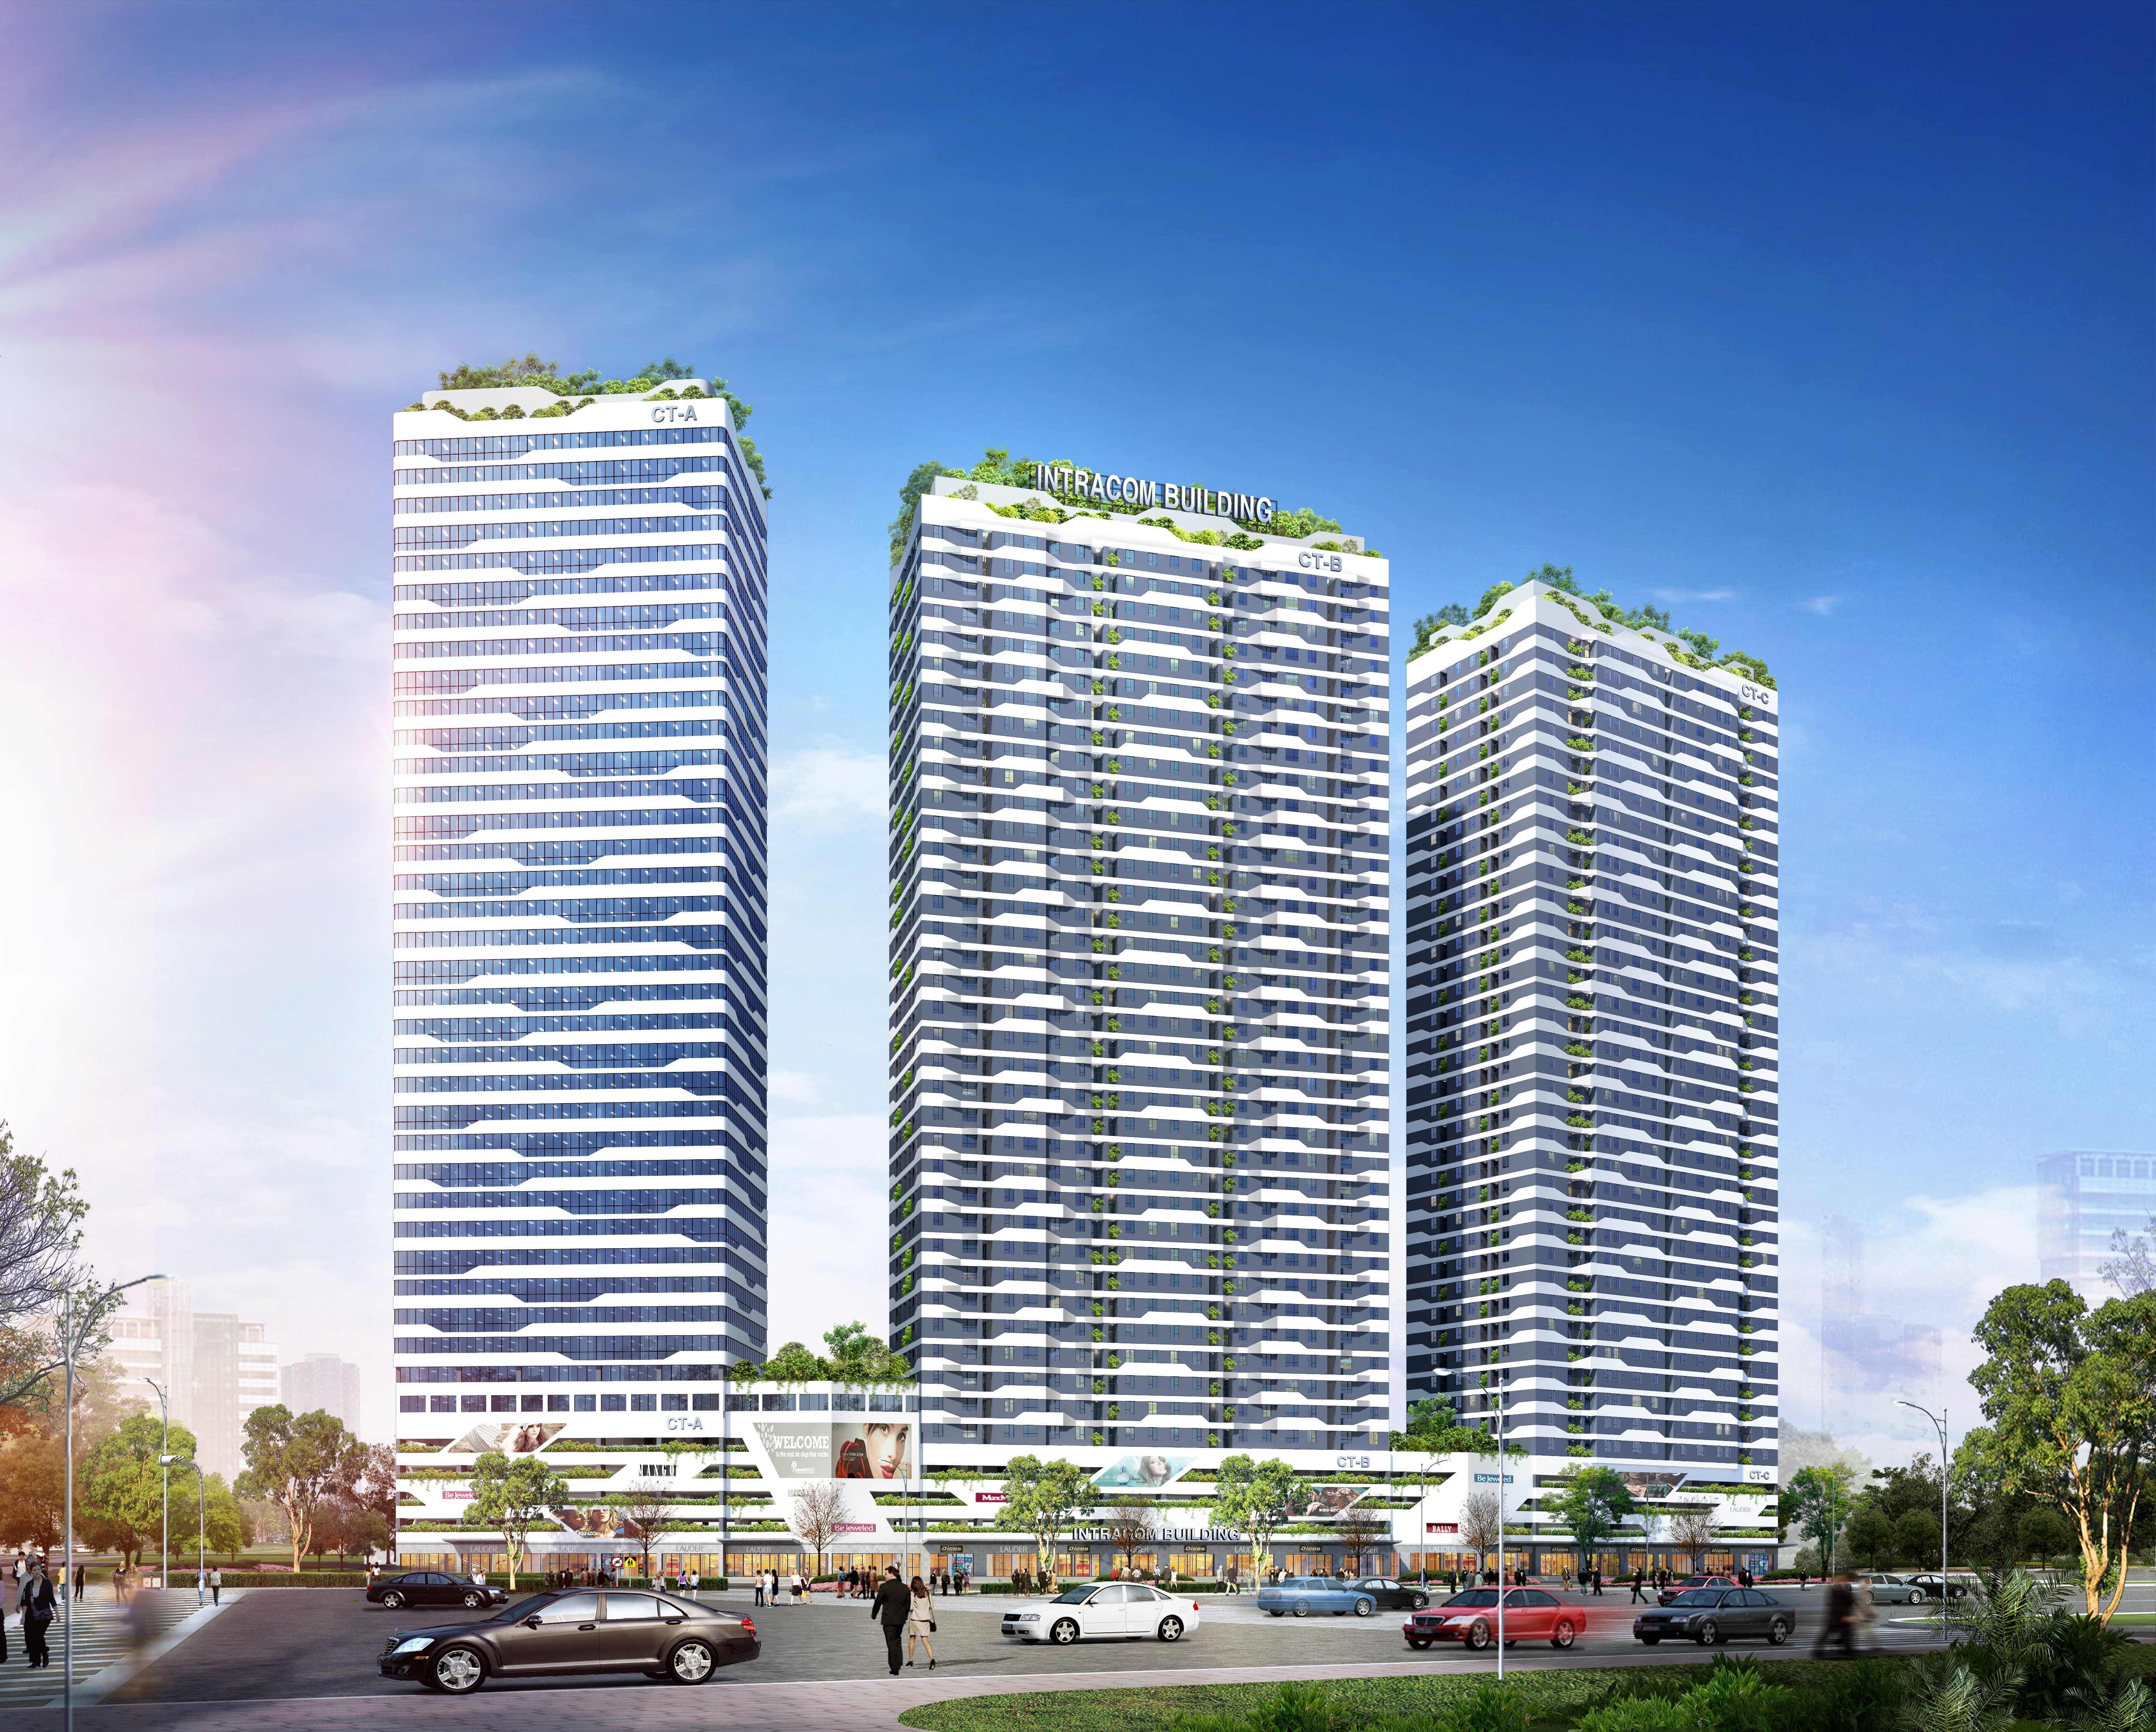 Dự án Intracom Riverside